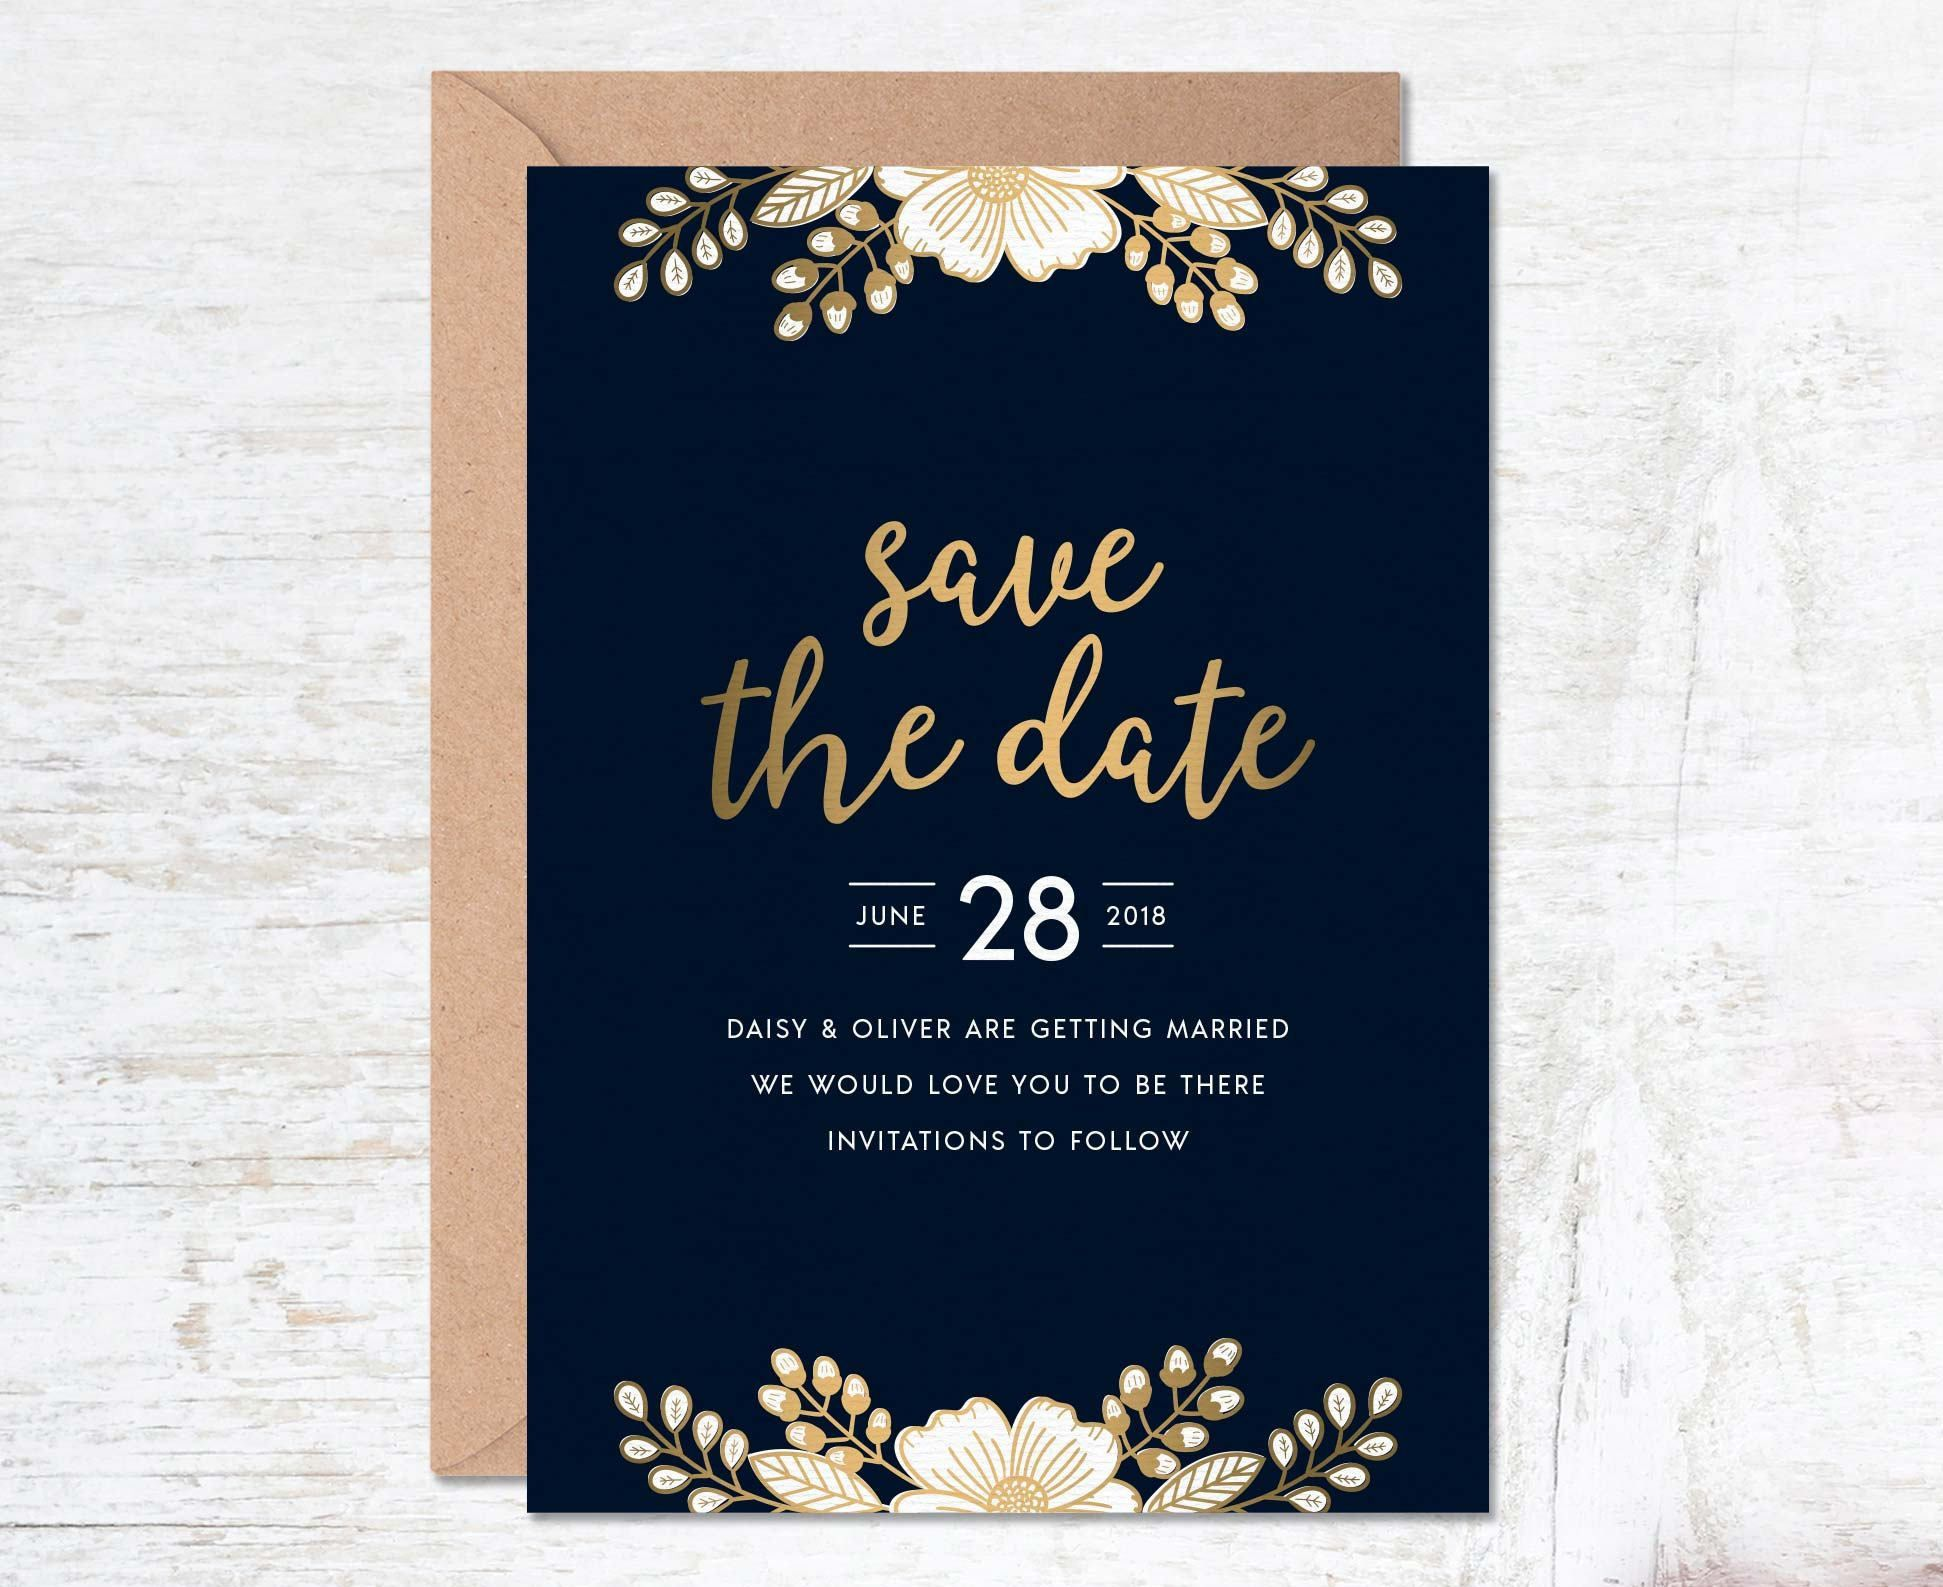 000 Unusual Free Save The Date Birthday Postcard Template Photo Full